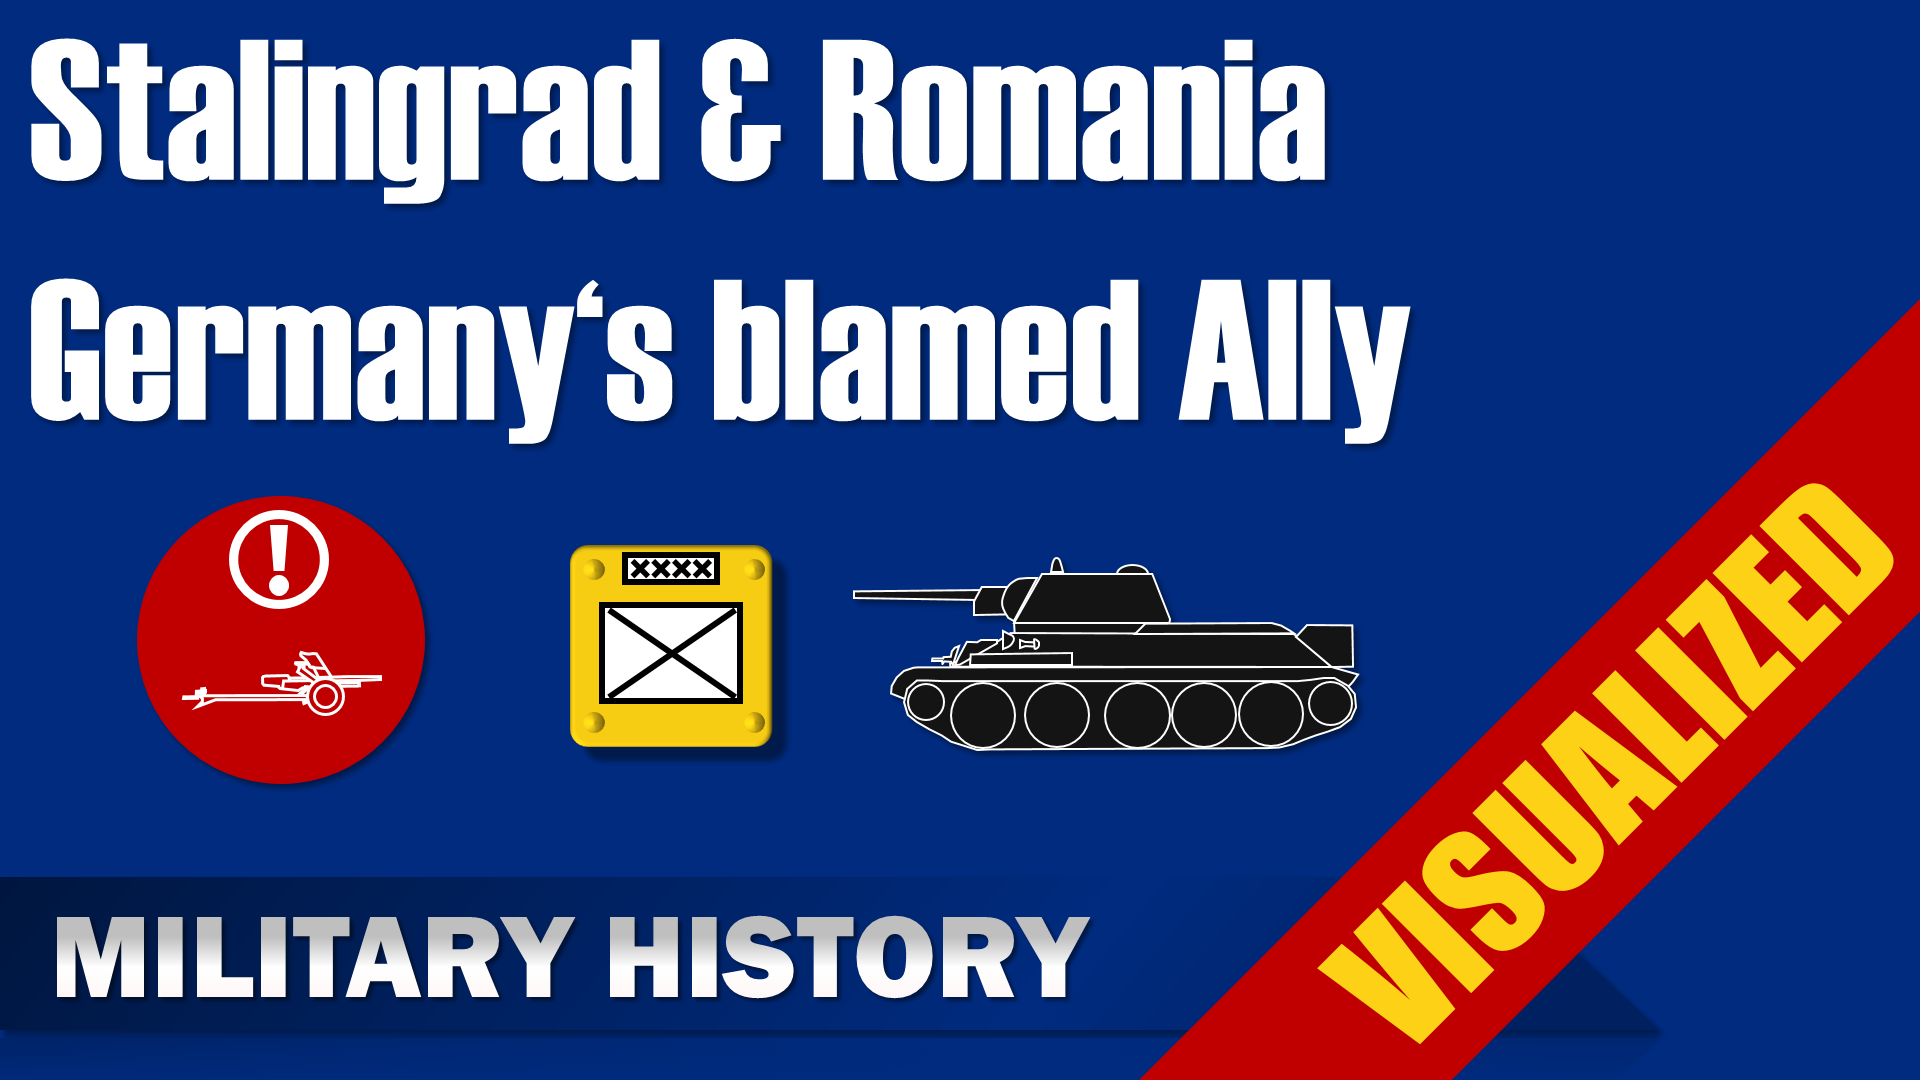 Stalingrad Romania Germanys Blamed Ally